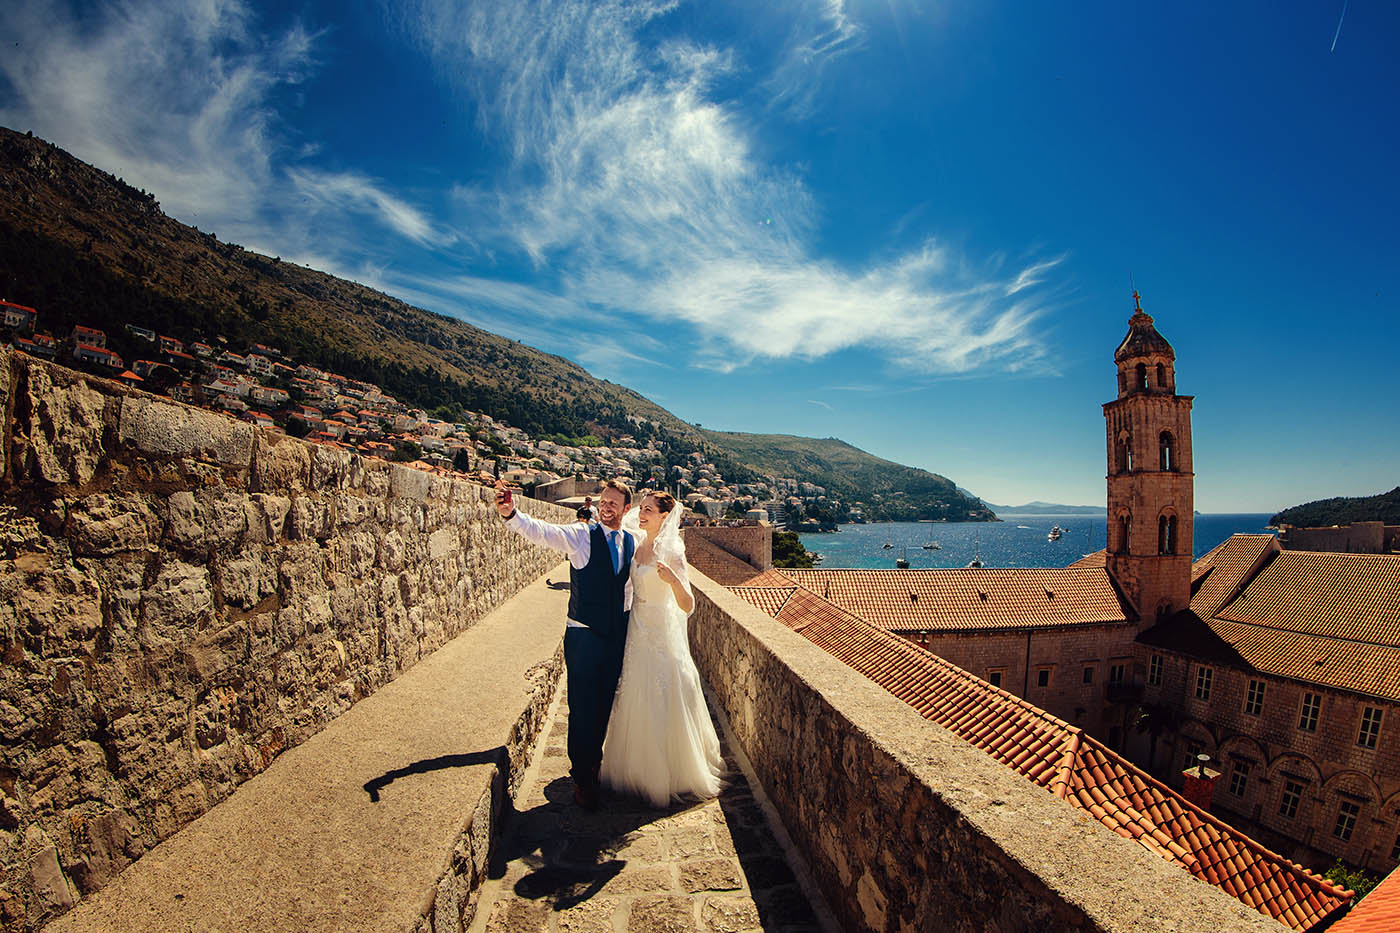 Mela & Nic's wedding in Dubrovnik Croatia